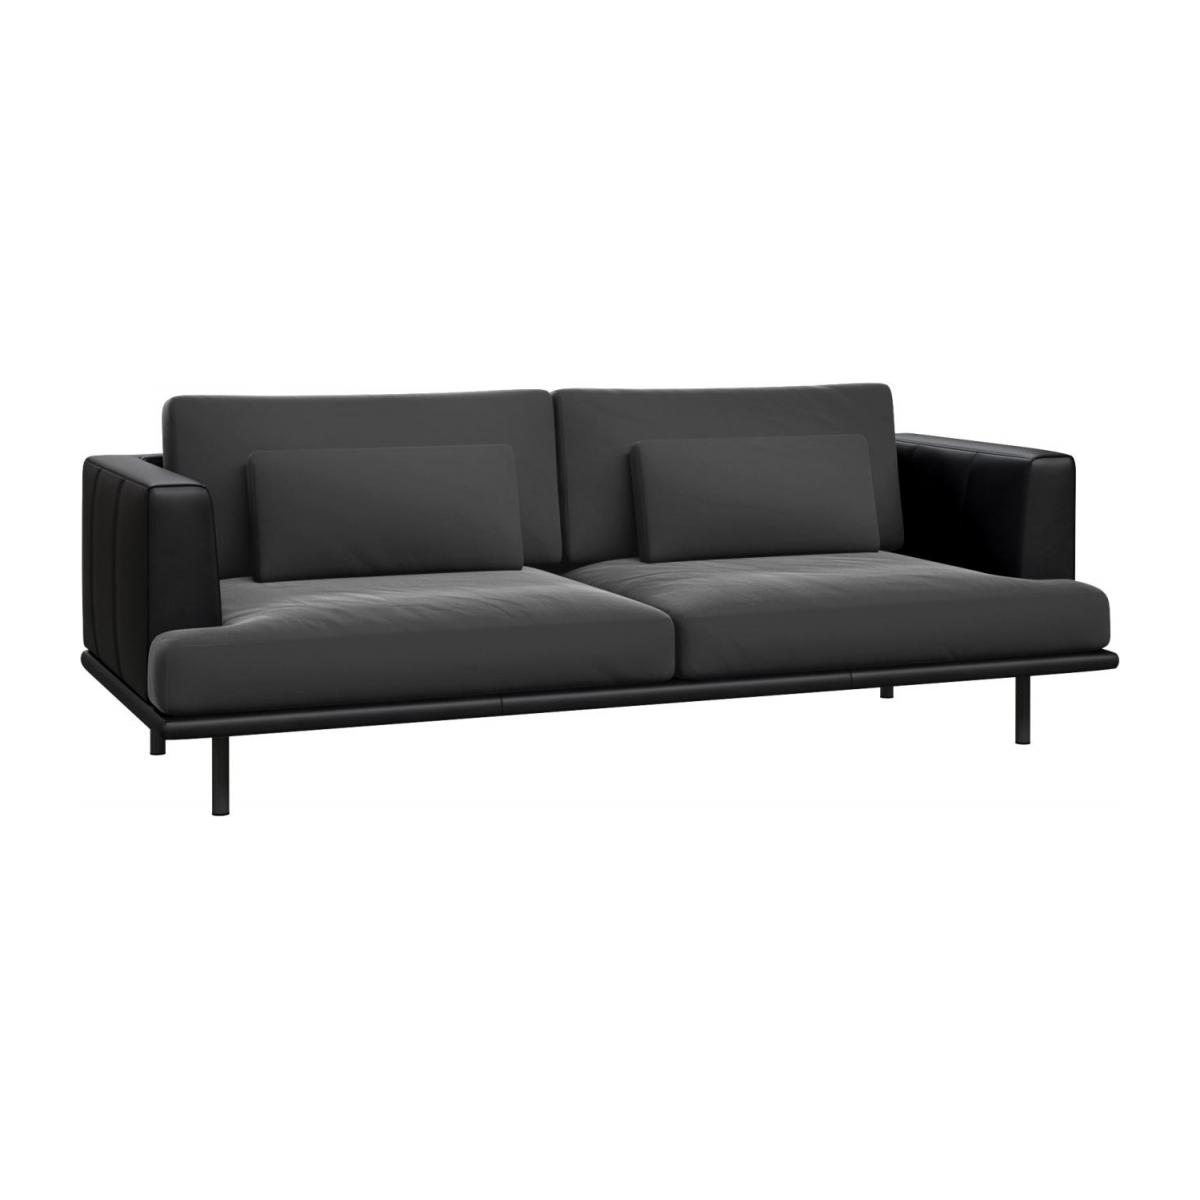 3 seater sofa in Super Velvet fabric, silver grey with base and armrests in black leather n°1